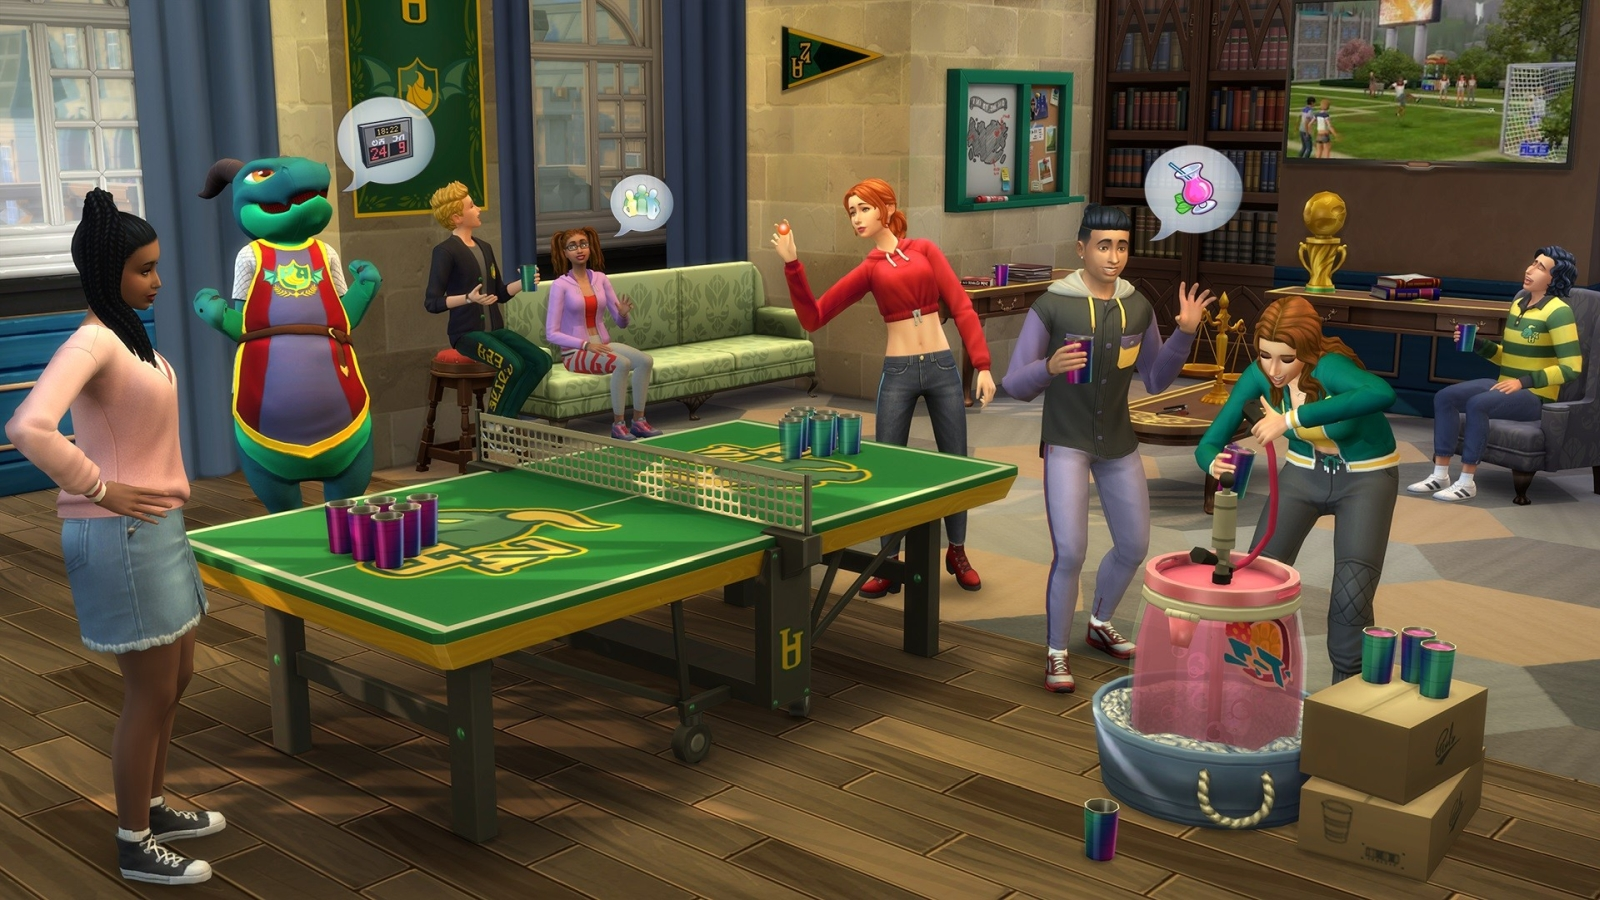 The Sims 5 Gameplay Rumors Sims Online Features will be Expanded